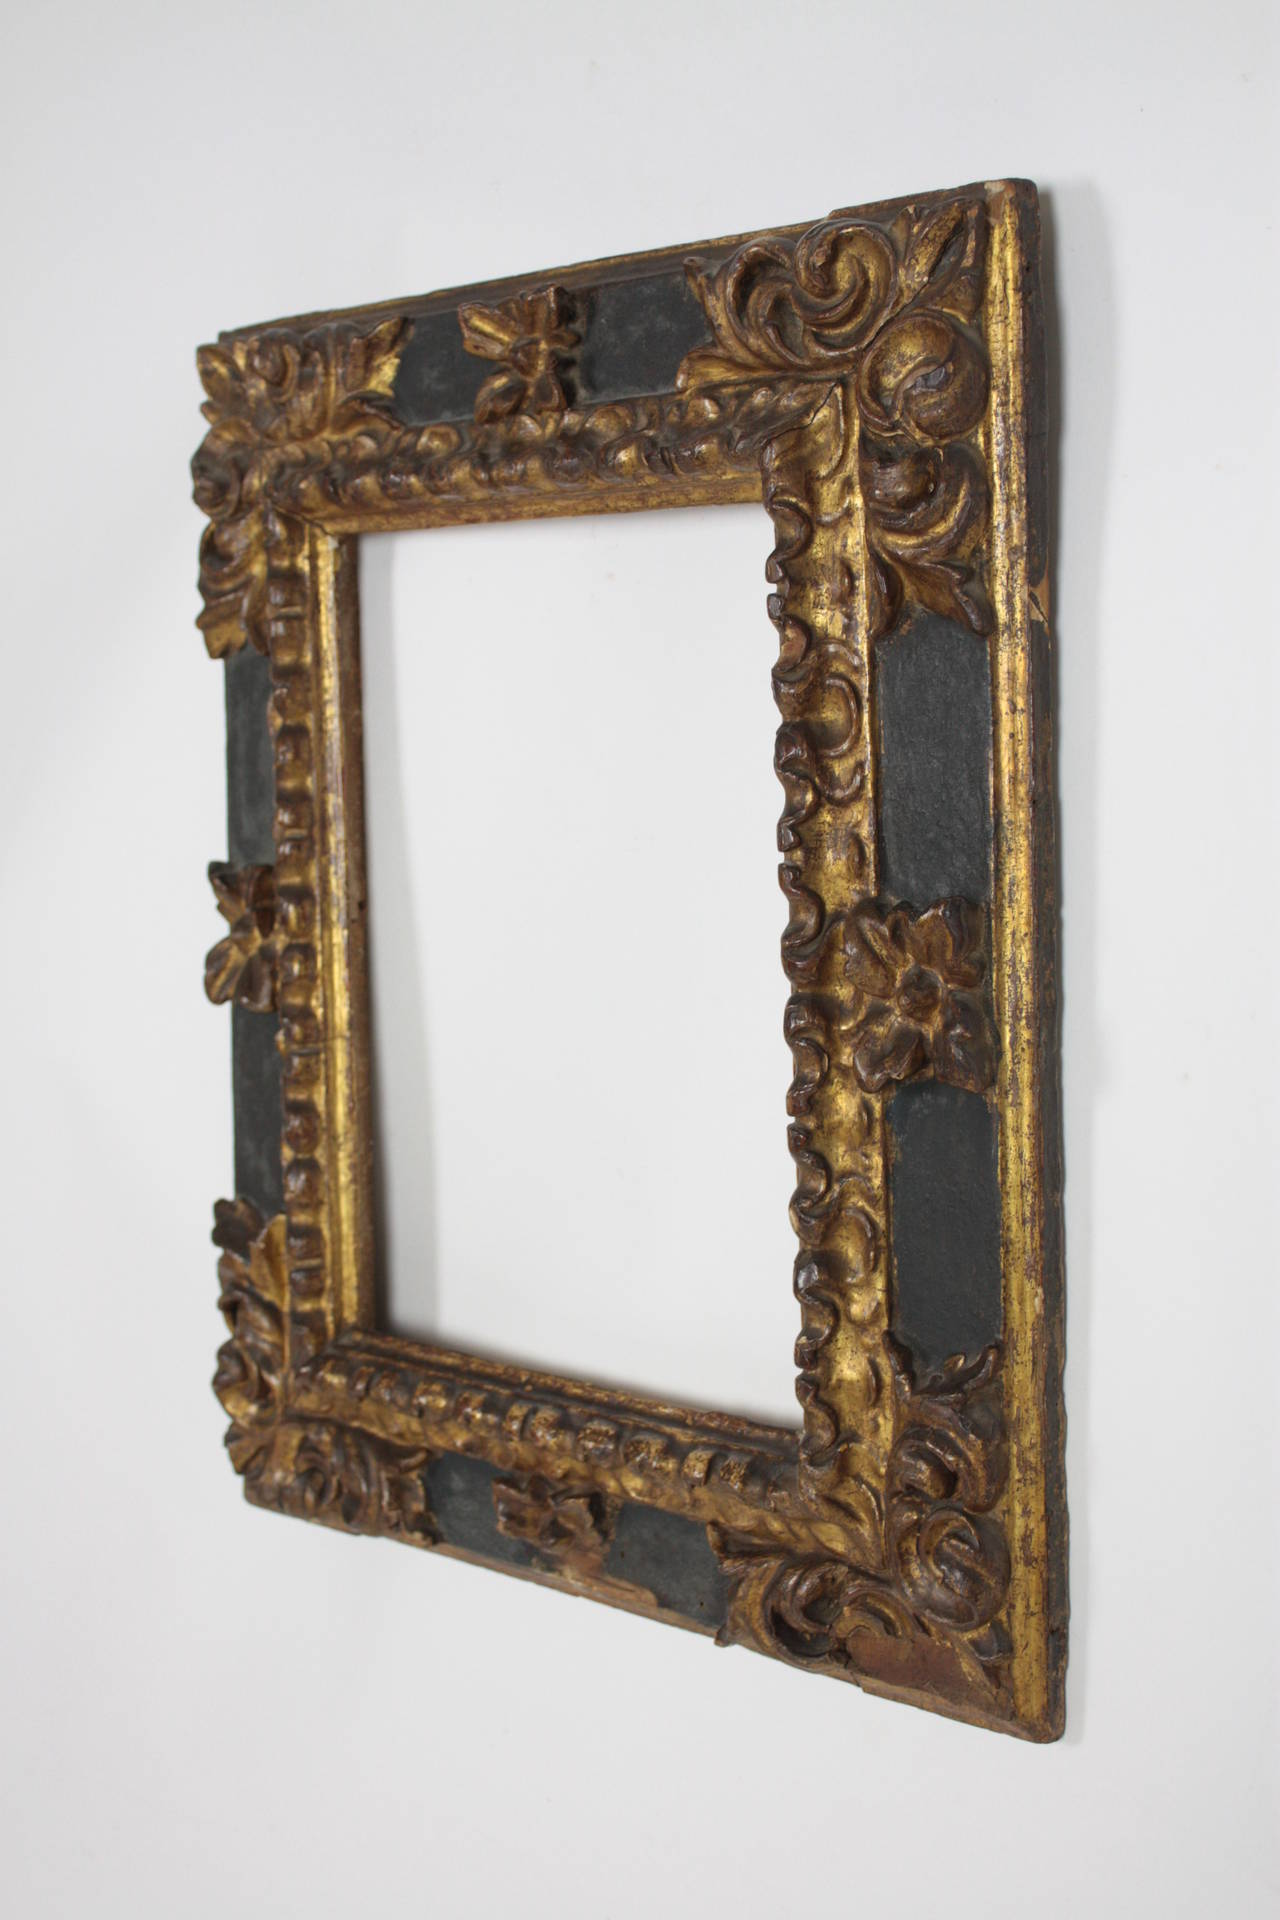 Rectangular frame finely carved in pinewood with gold leaf flowers details. An original and gorgeous example of the Spanish Baroque style. The frame was restored 23 years ago. It has belonged to our private collection and it comes from Zaragoza,